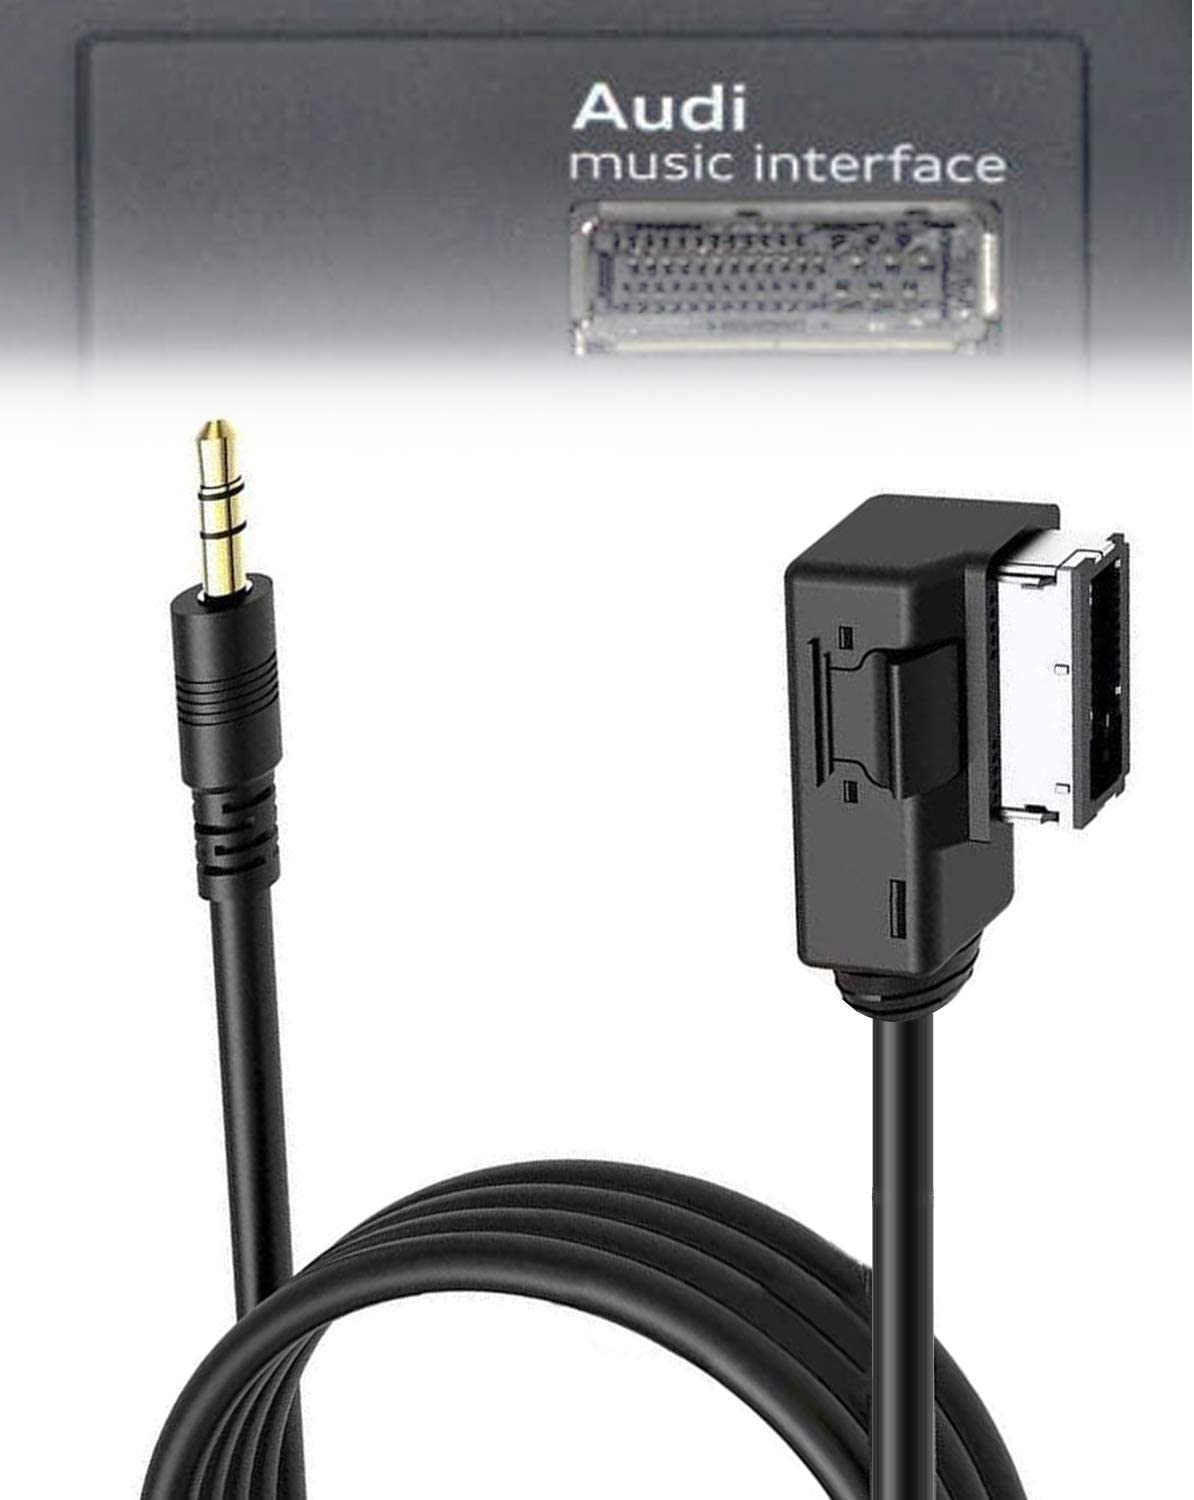 ELONN for Volkswagen Audi Accessories iPhone iPod Cellphone MP3 Aux Cable MDI AMI MMI Music Audio Interface Adapter - 6 Foot Extra Long